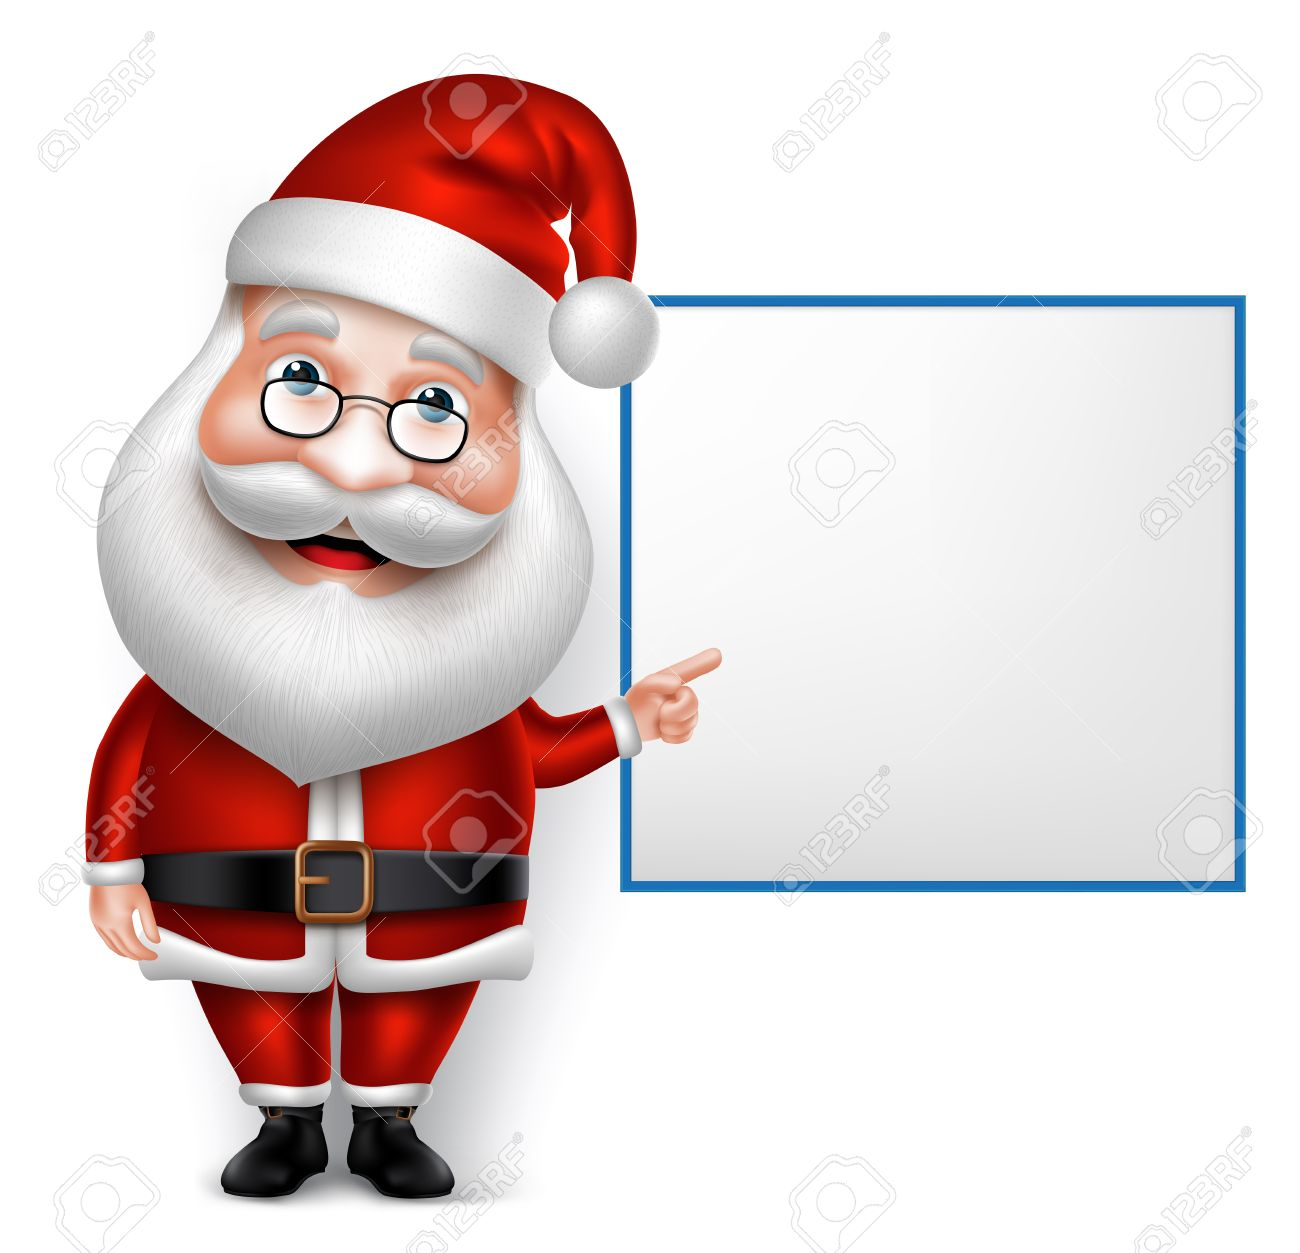 3D Realistic Santa Claus Cartoon Character for Christmas Holding Blank Board Isolated in White Background. Vector Illustration - 45509060